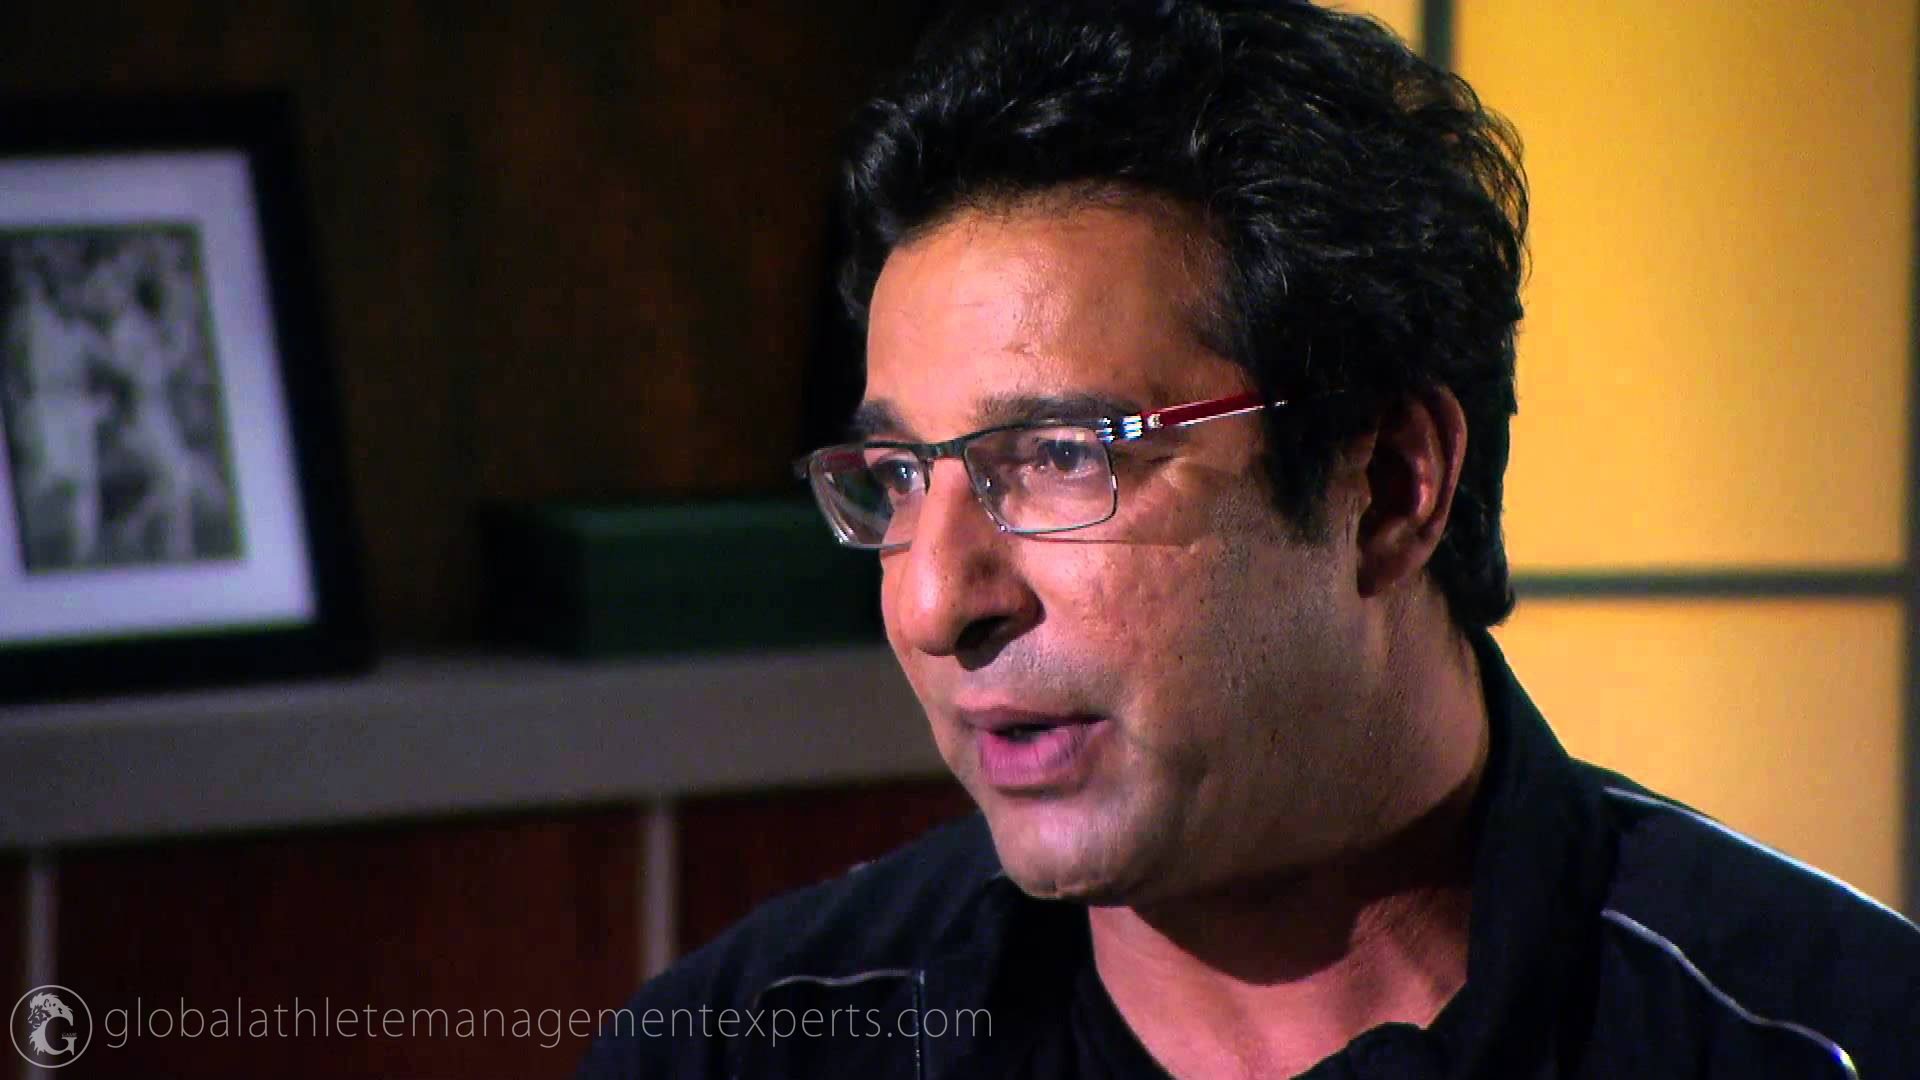 Wasim Akram steps in to resolve Afridi-Miandad tussle